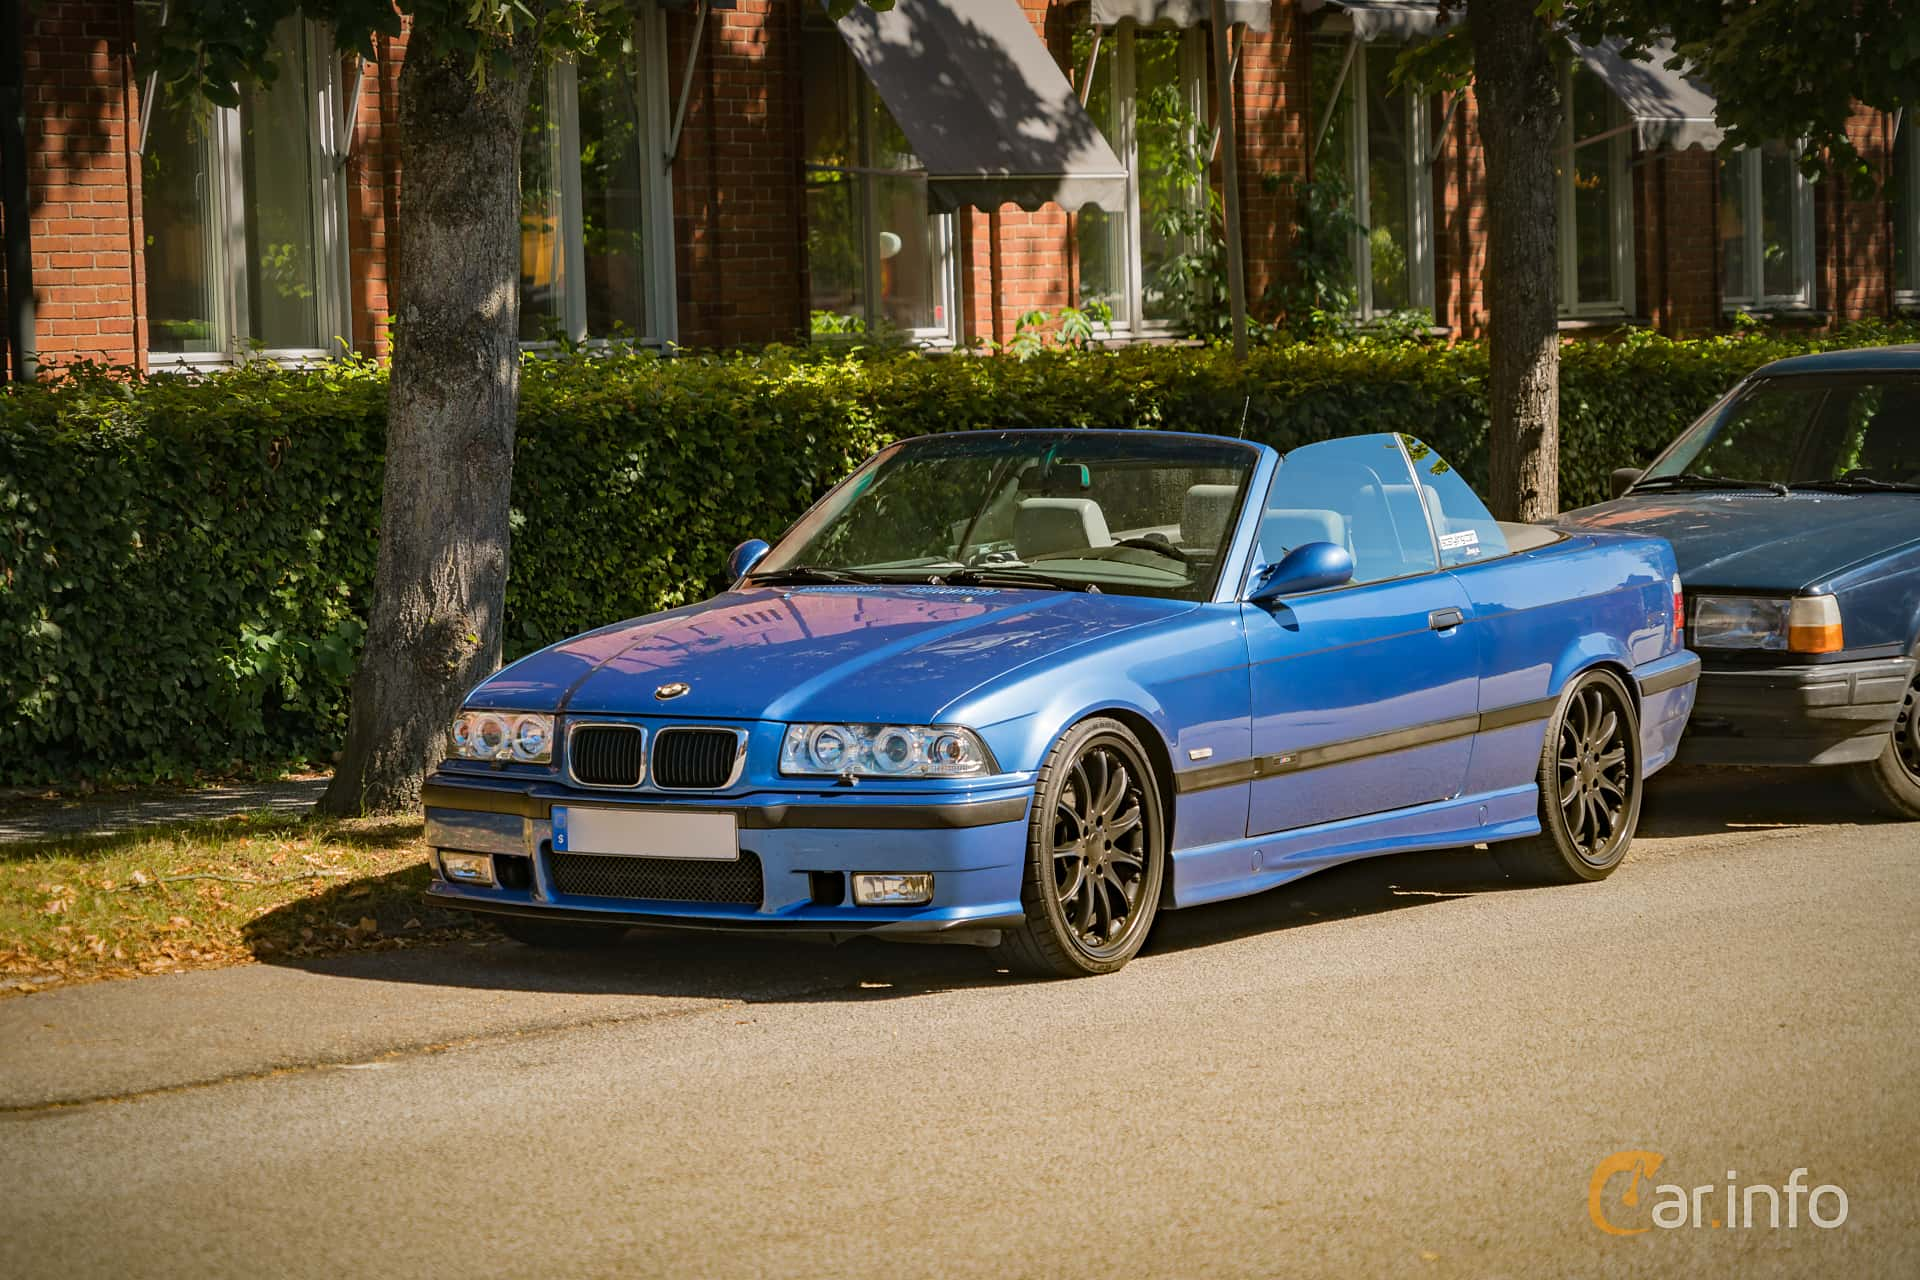 Images Of BMW M Convertible SMG Hp By Marcusliedholm - 1997 bmw m3 convertible